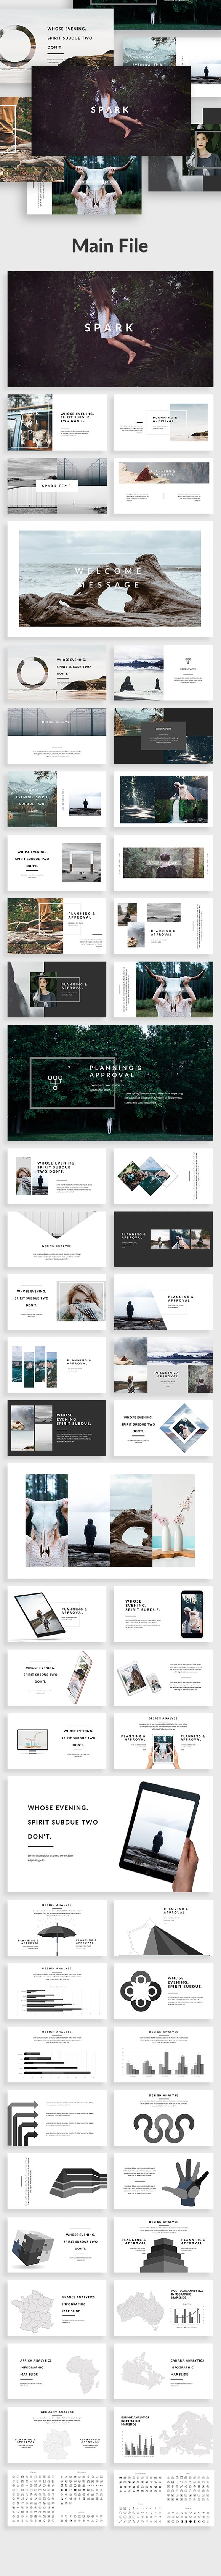 Spark 01 Powerpoint Template